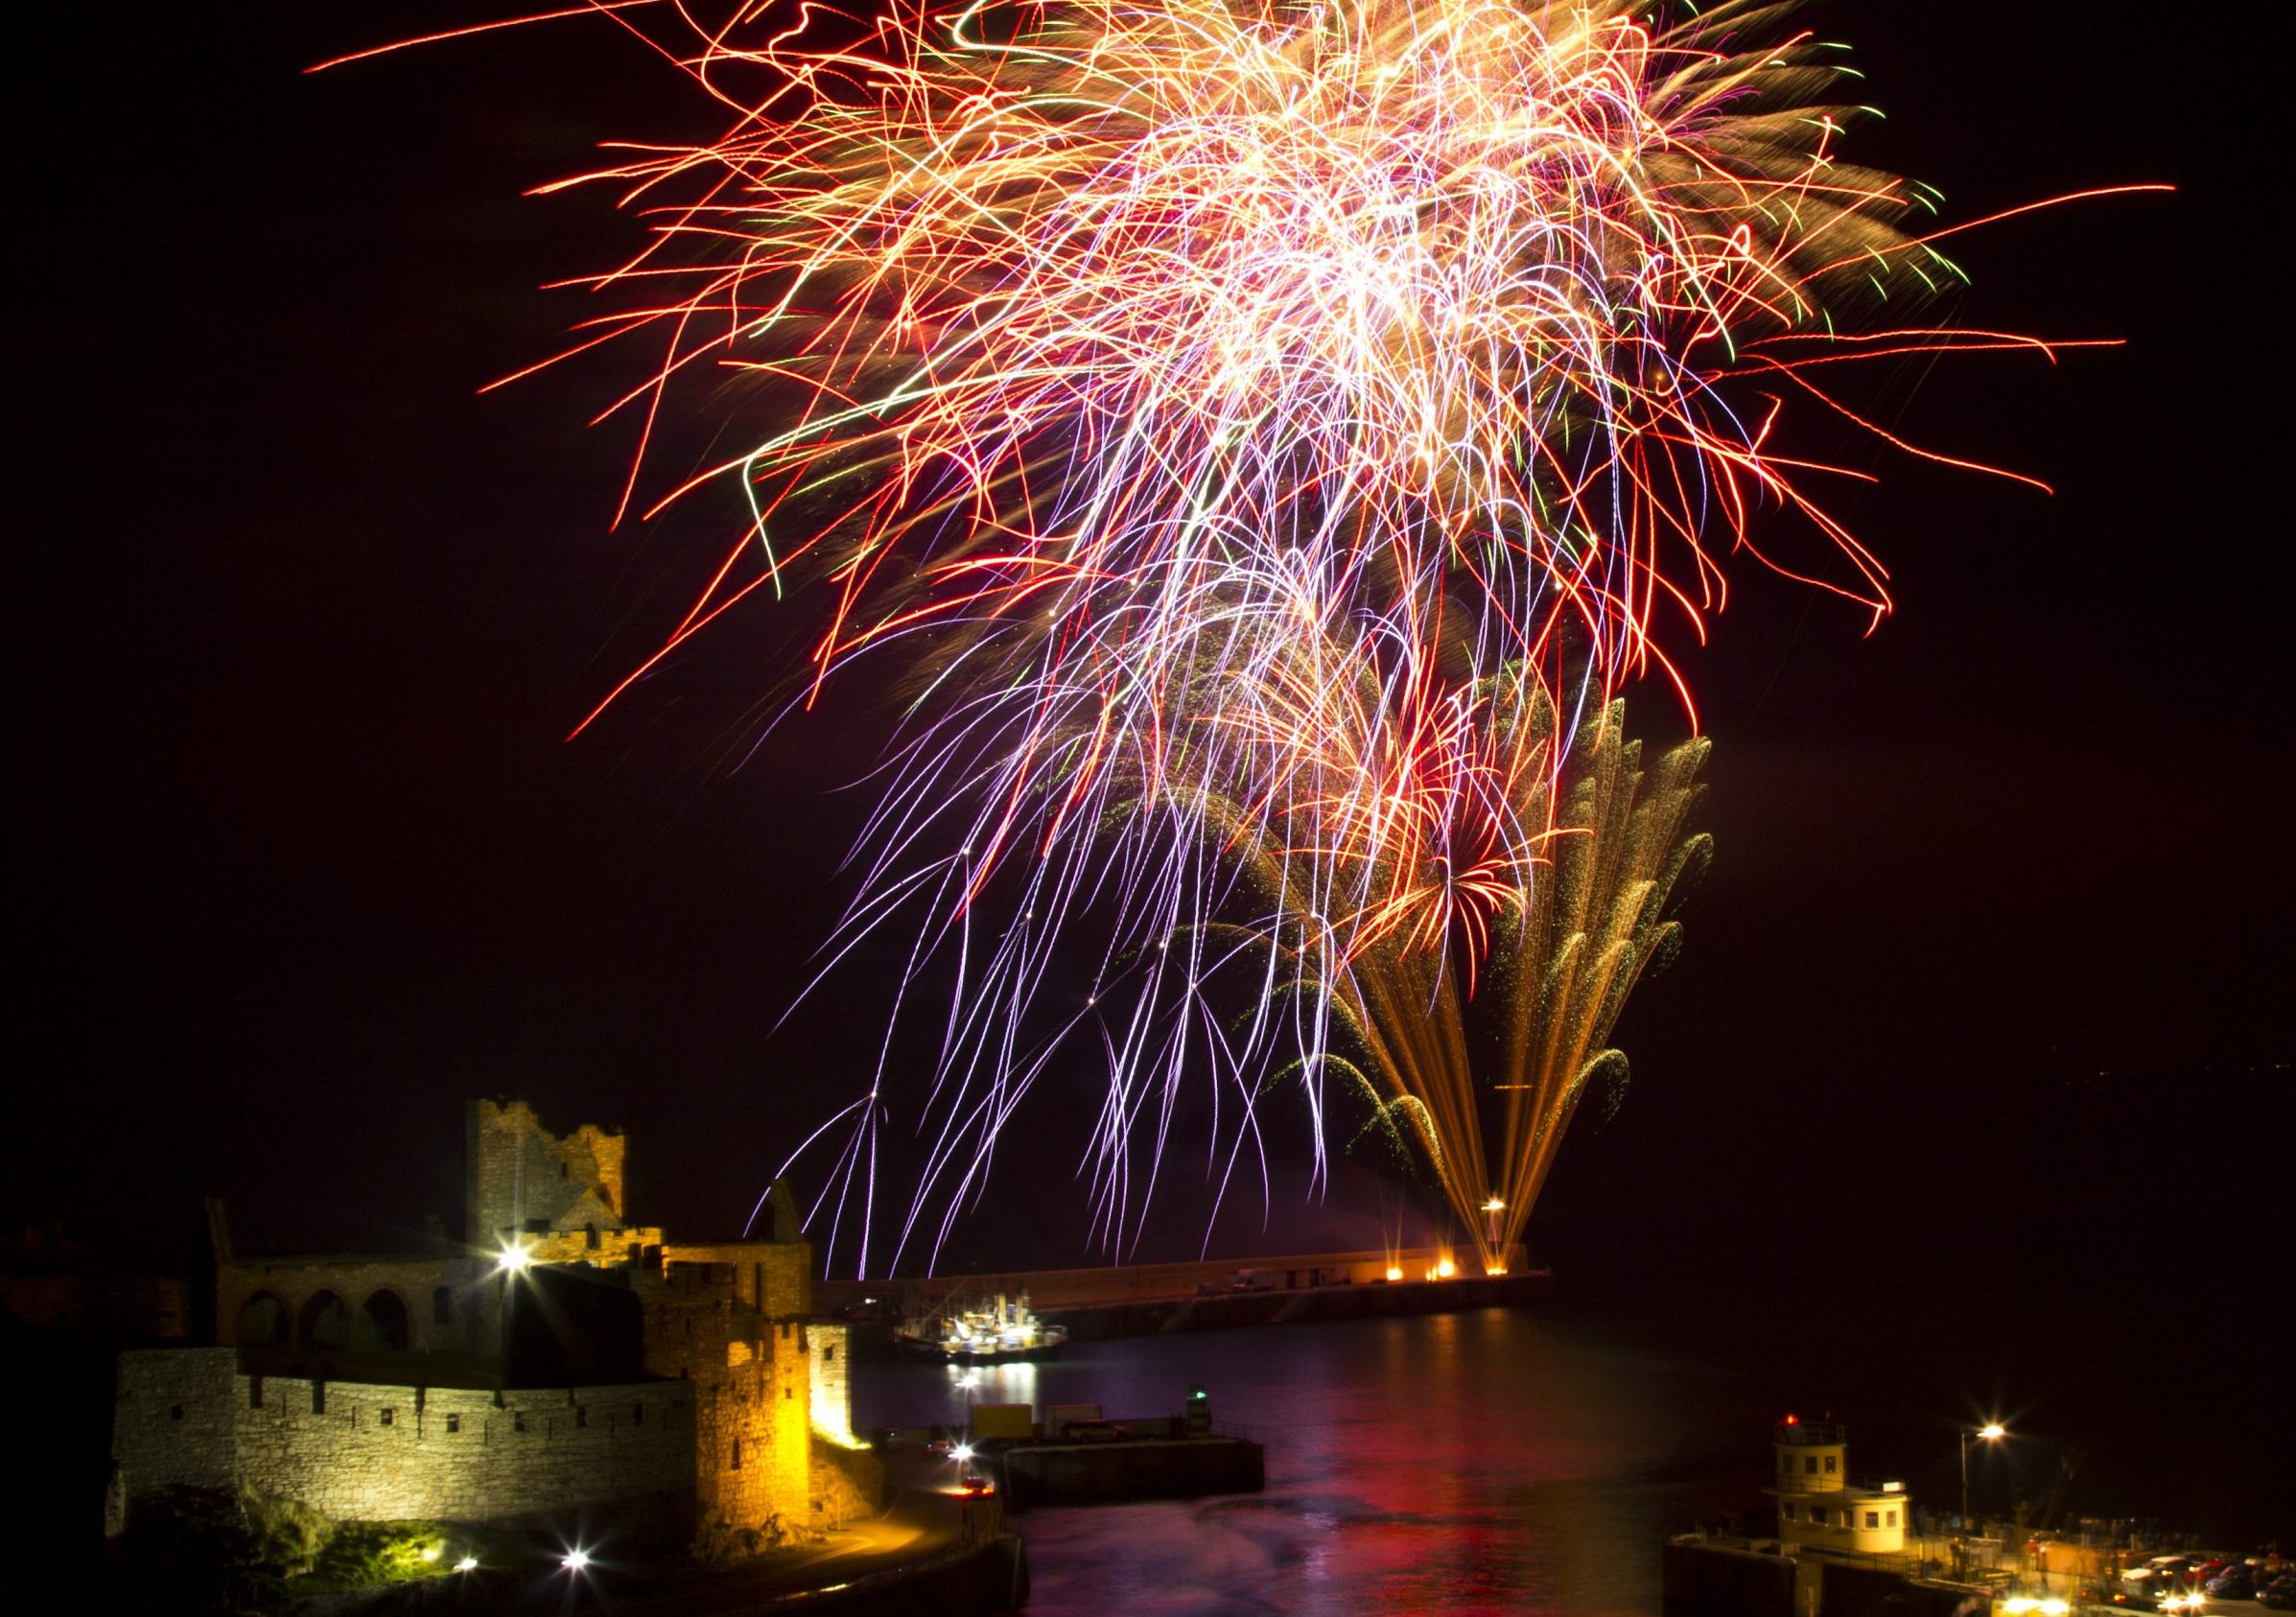 Fireworks by Danni Coombes, winner of 2015 photo competition